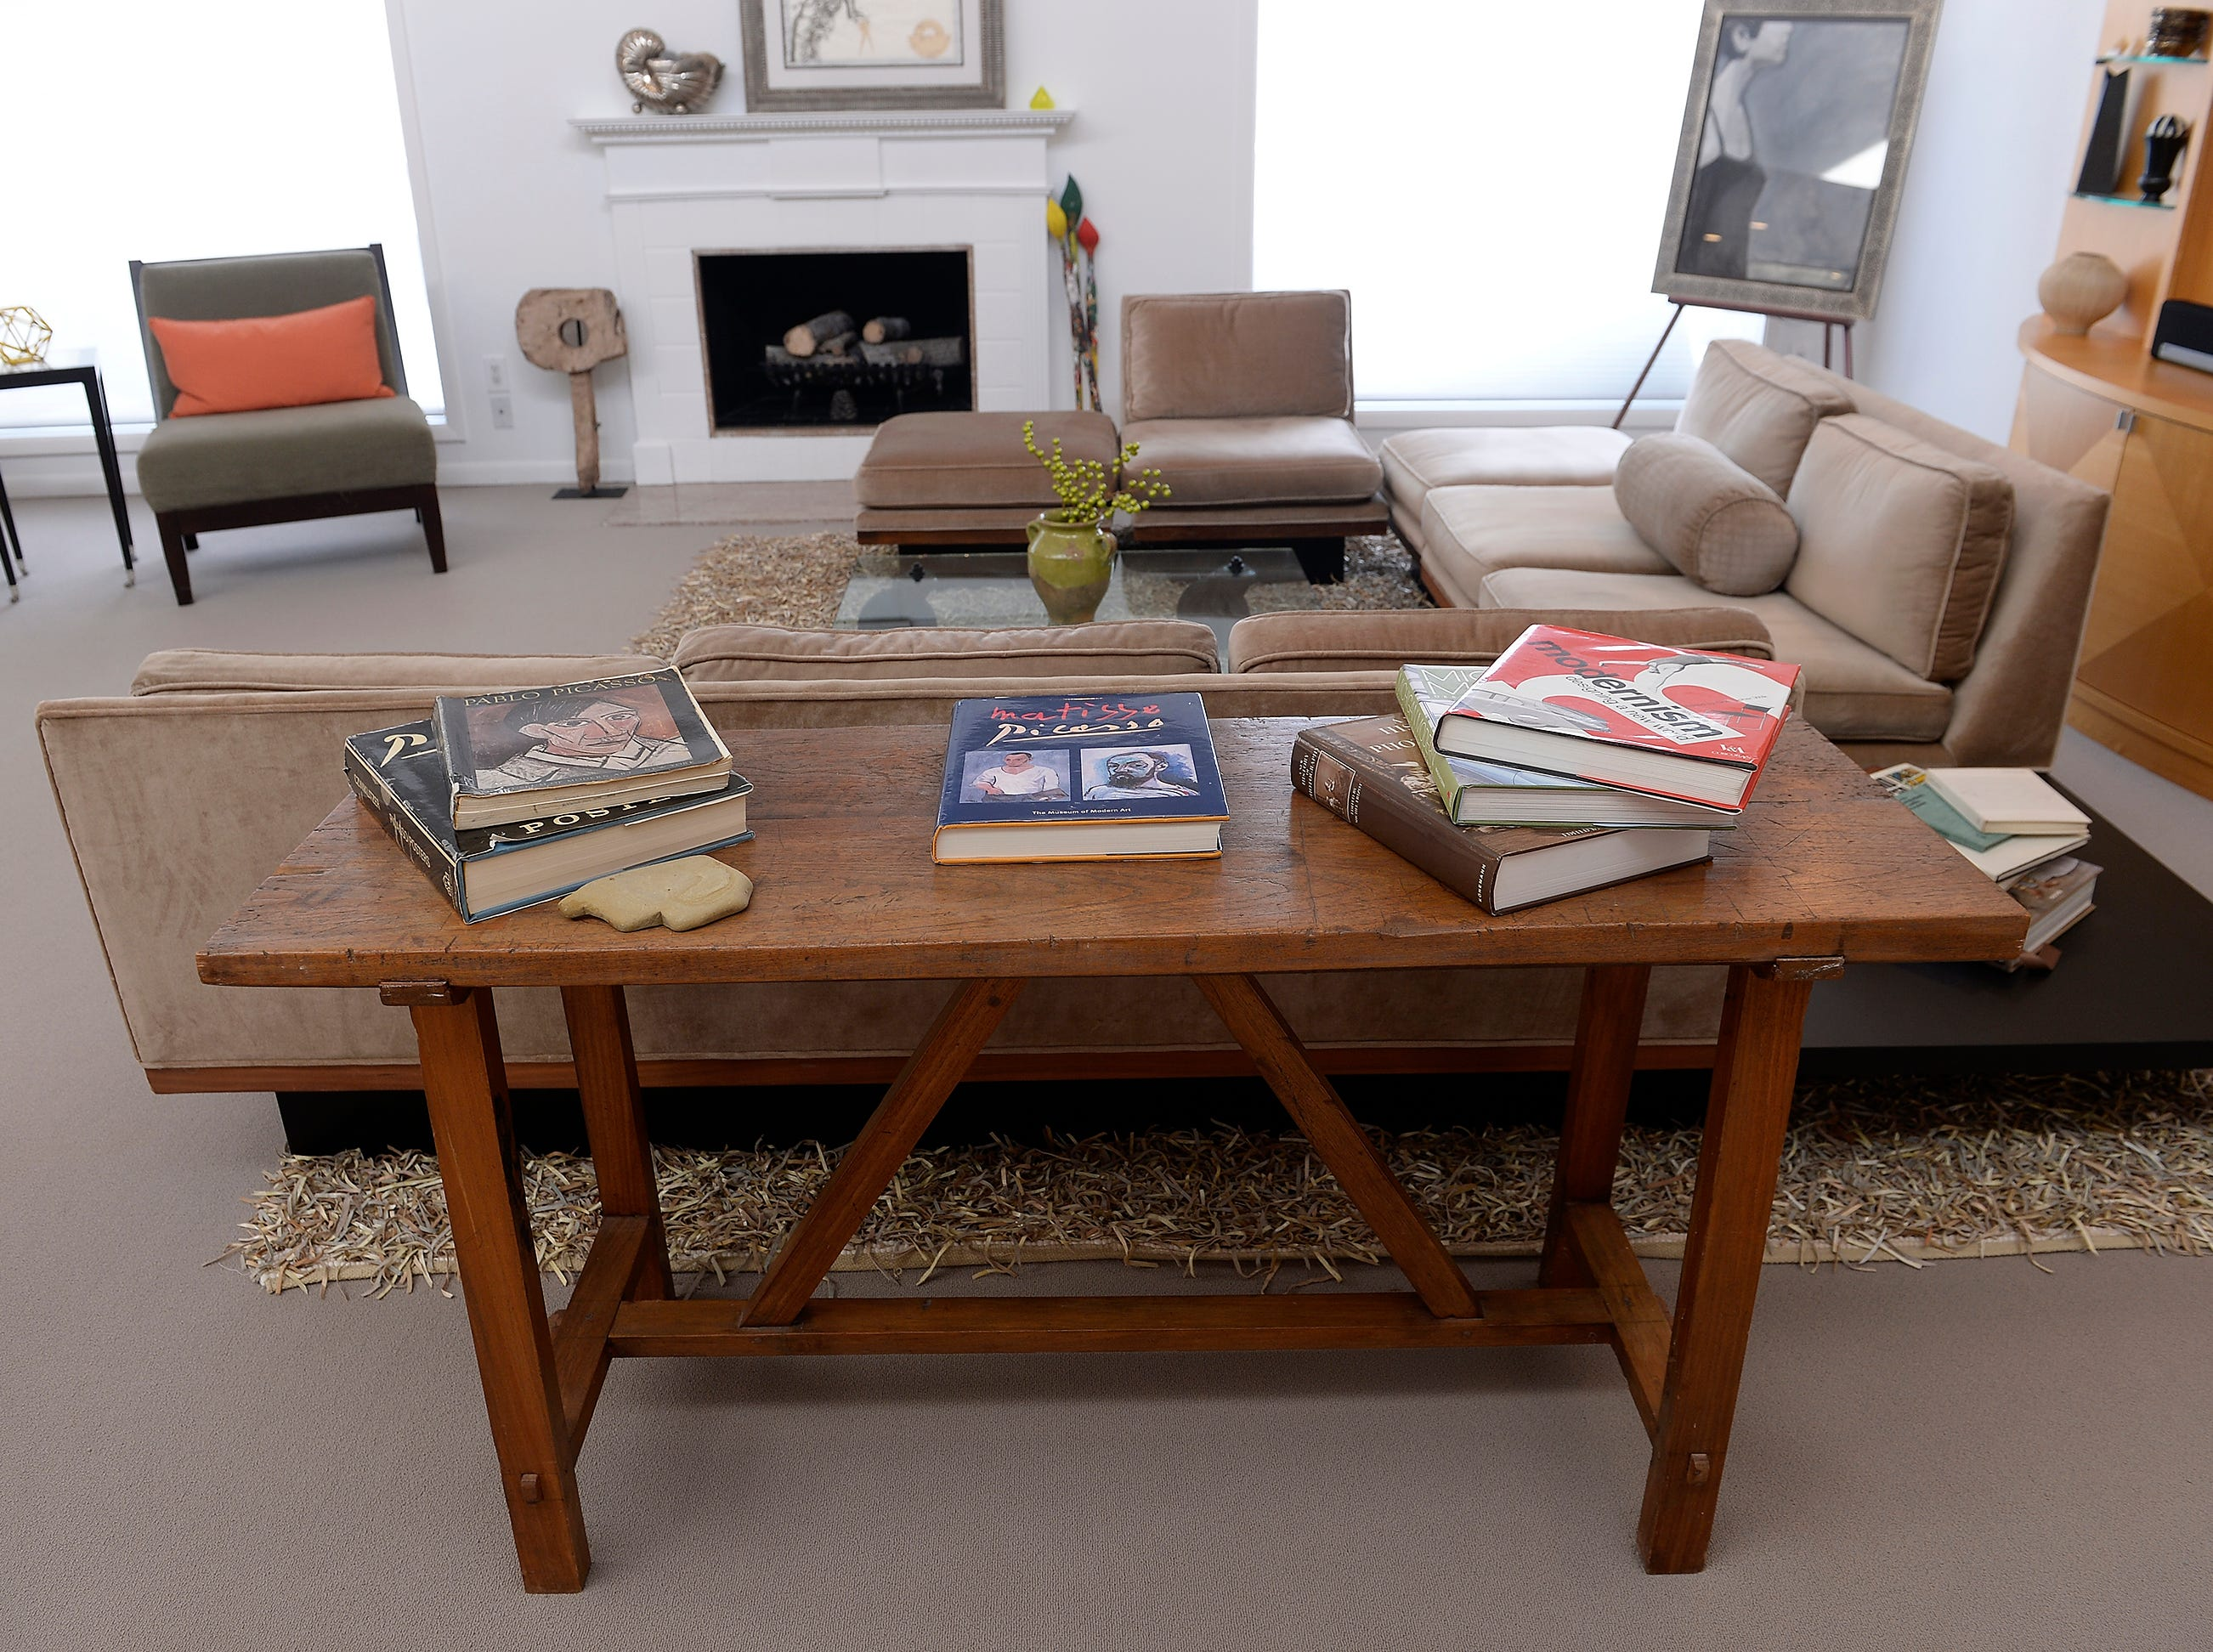 A wood table with art books inside the living room.